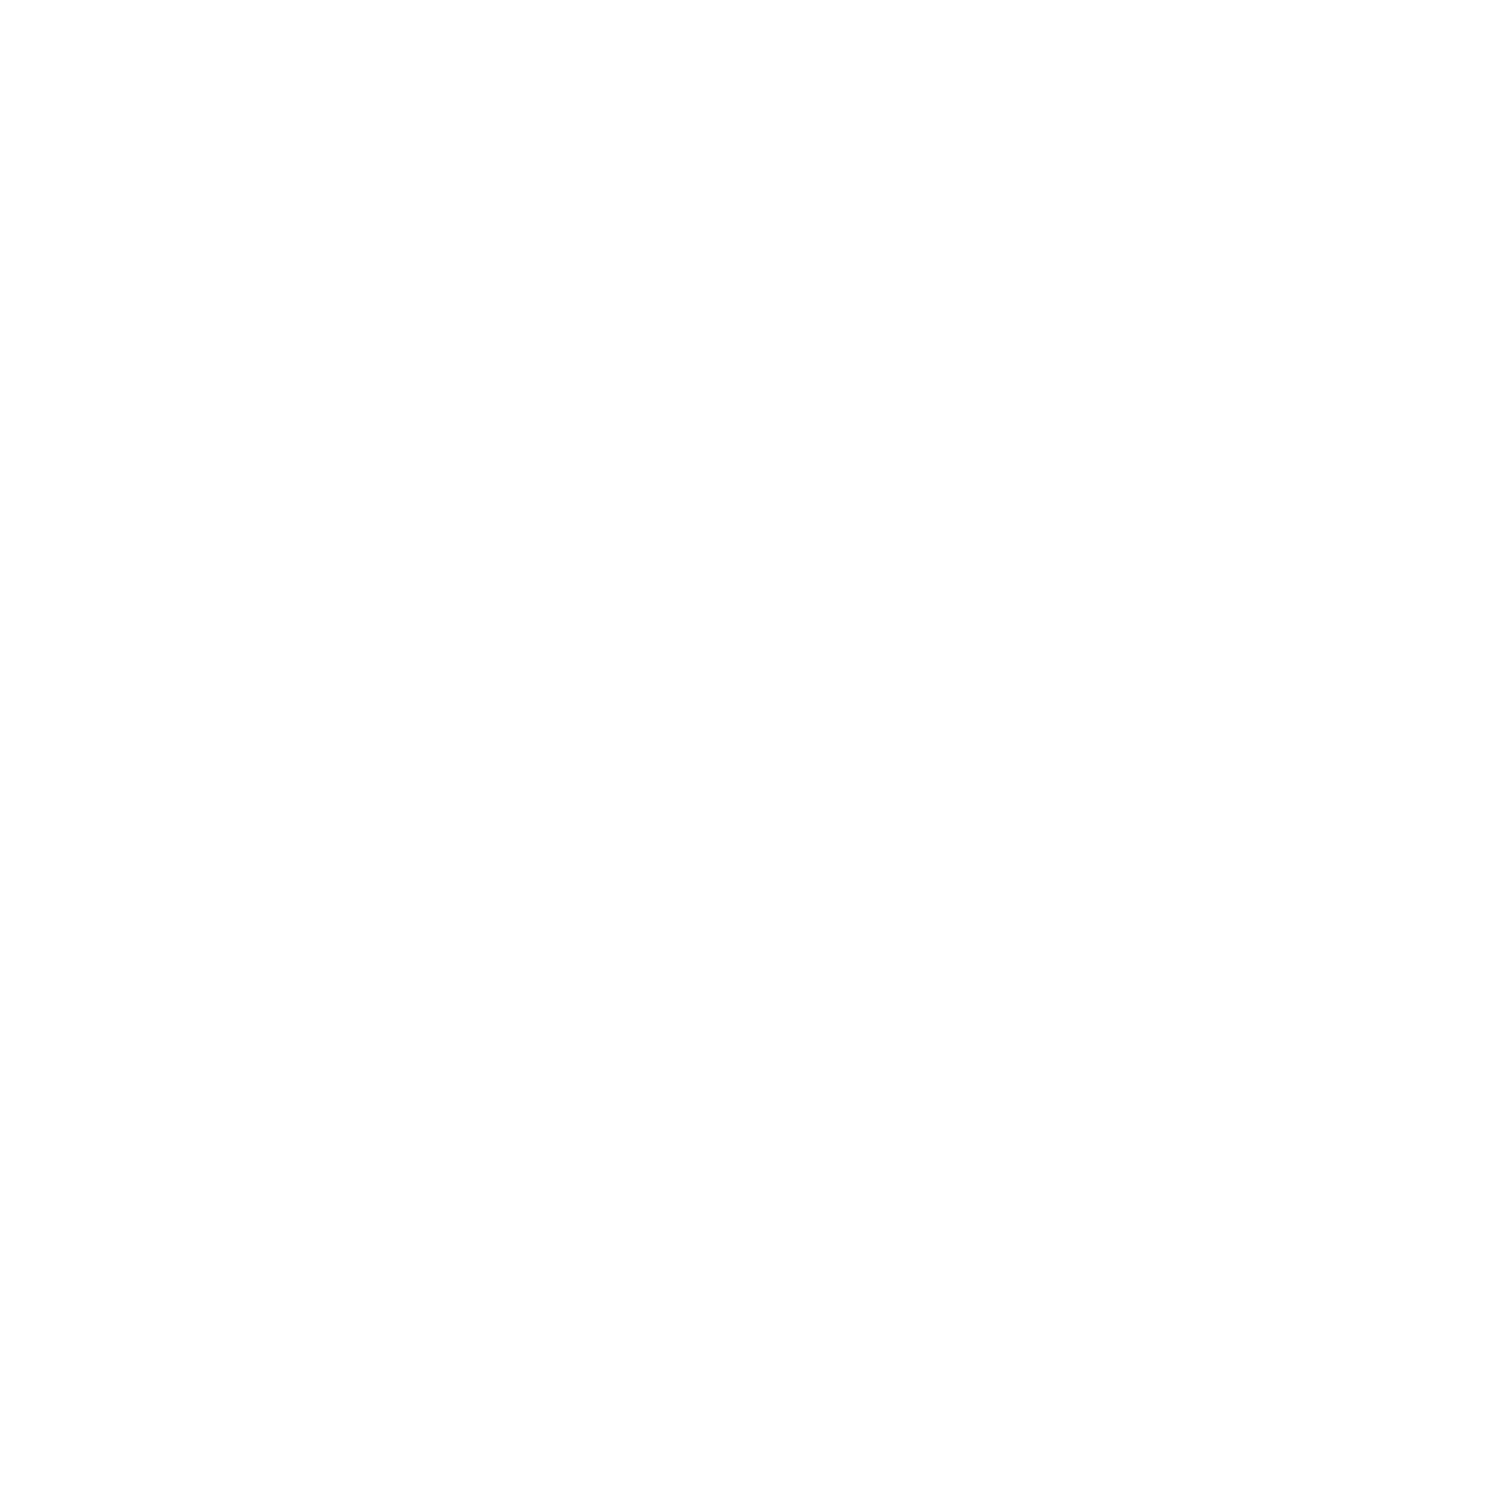 100 Layer Cake Features